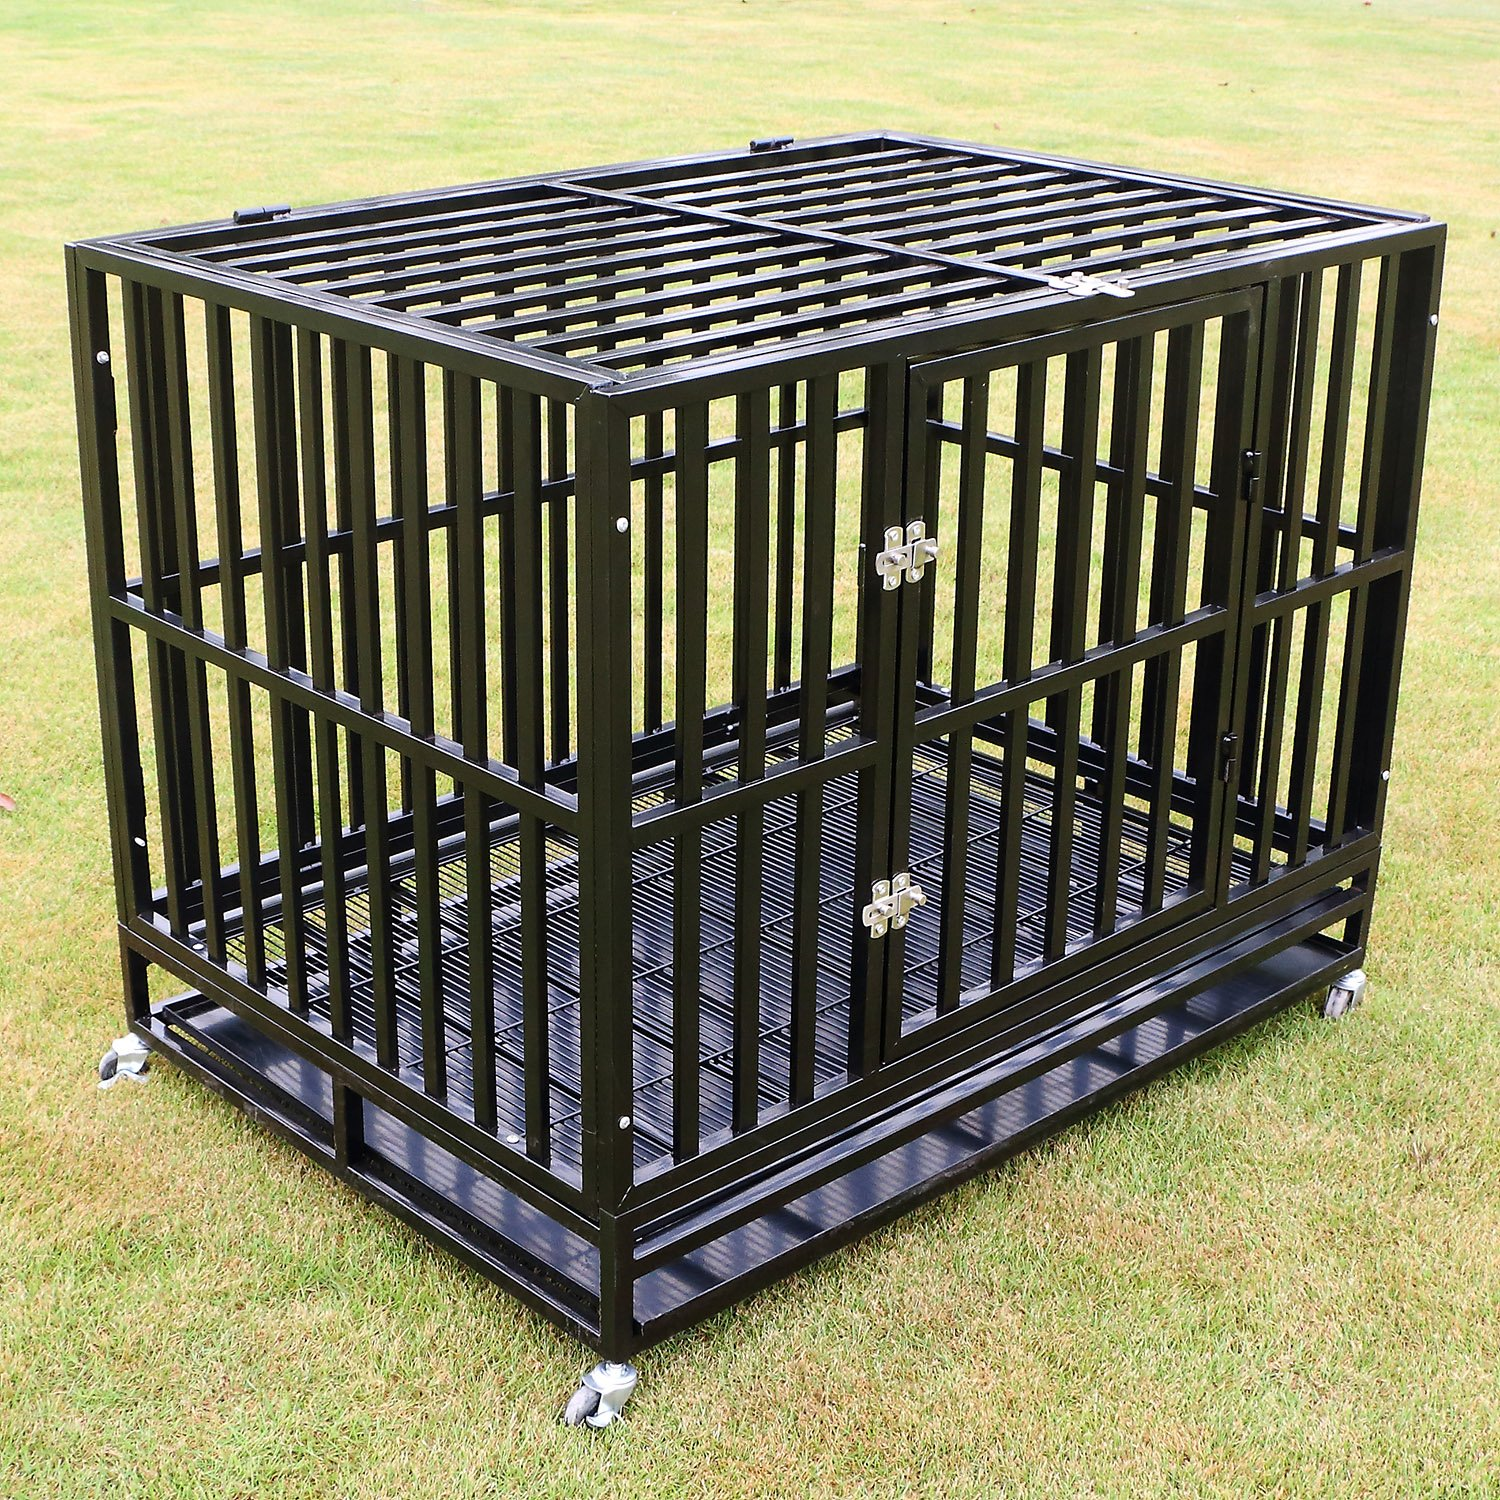 Amazon.com: sliverylake perro Jaula Crate Jaula – Heavy Duty ...